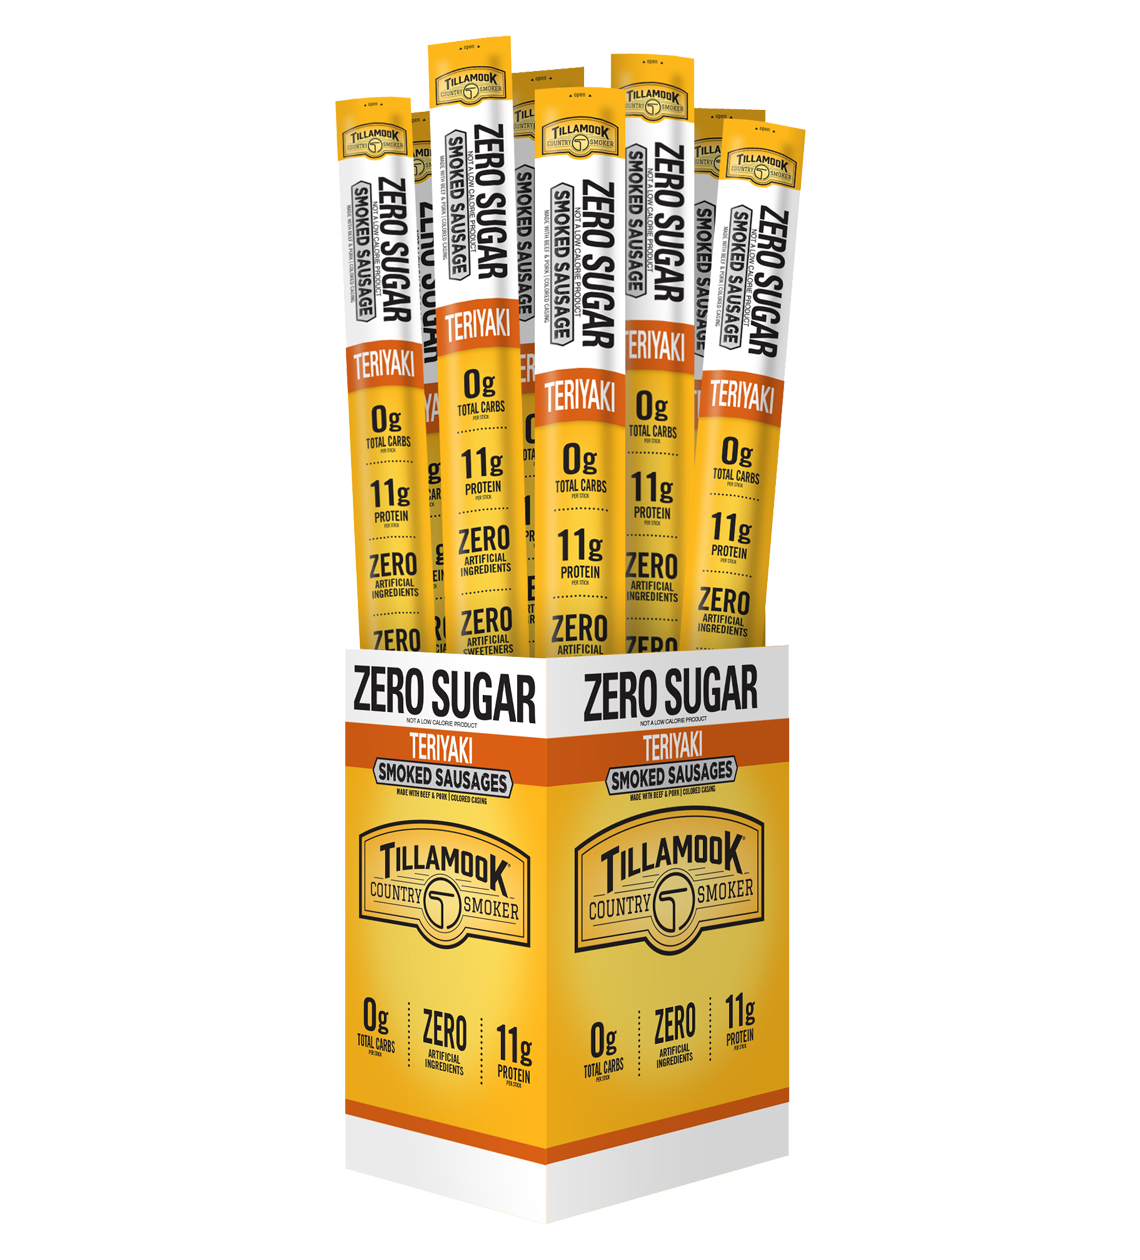 #127 Zero Sugar Teriyaki Meat Sticks